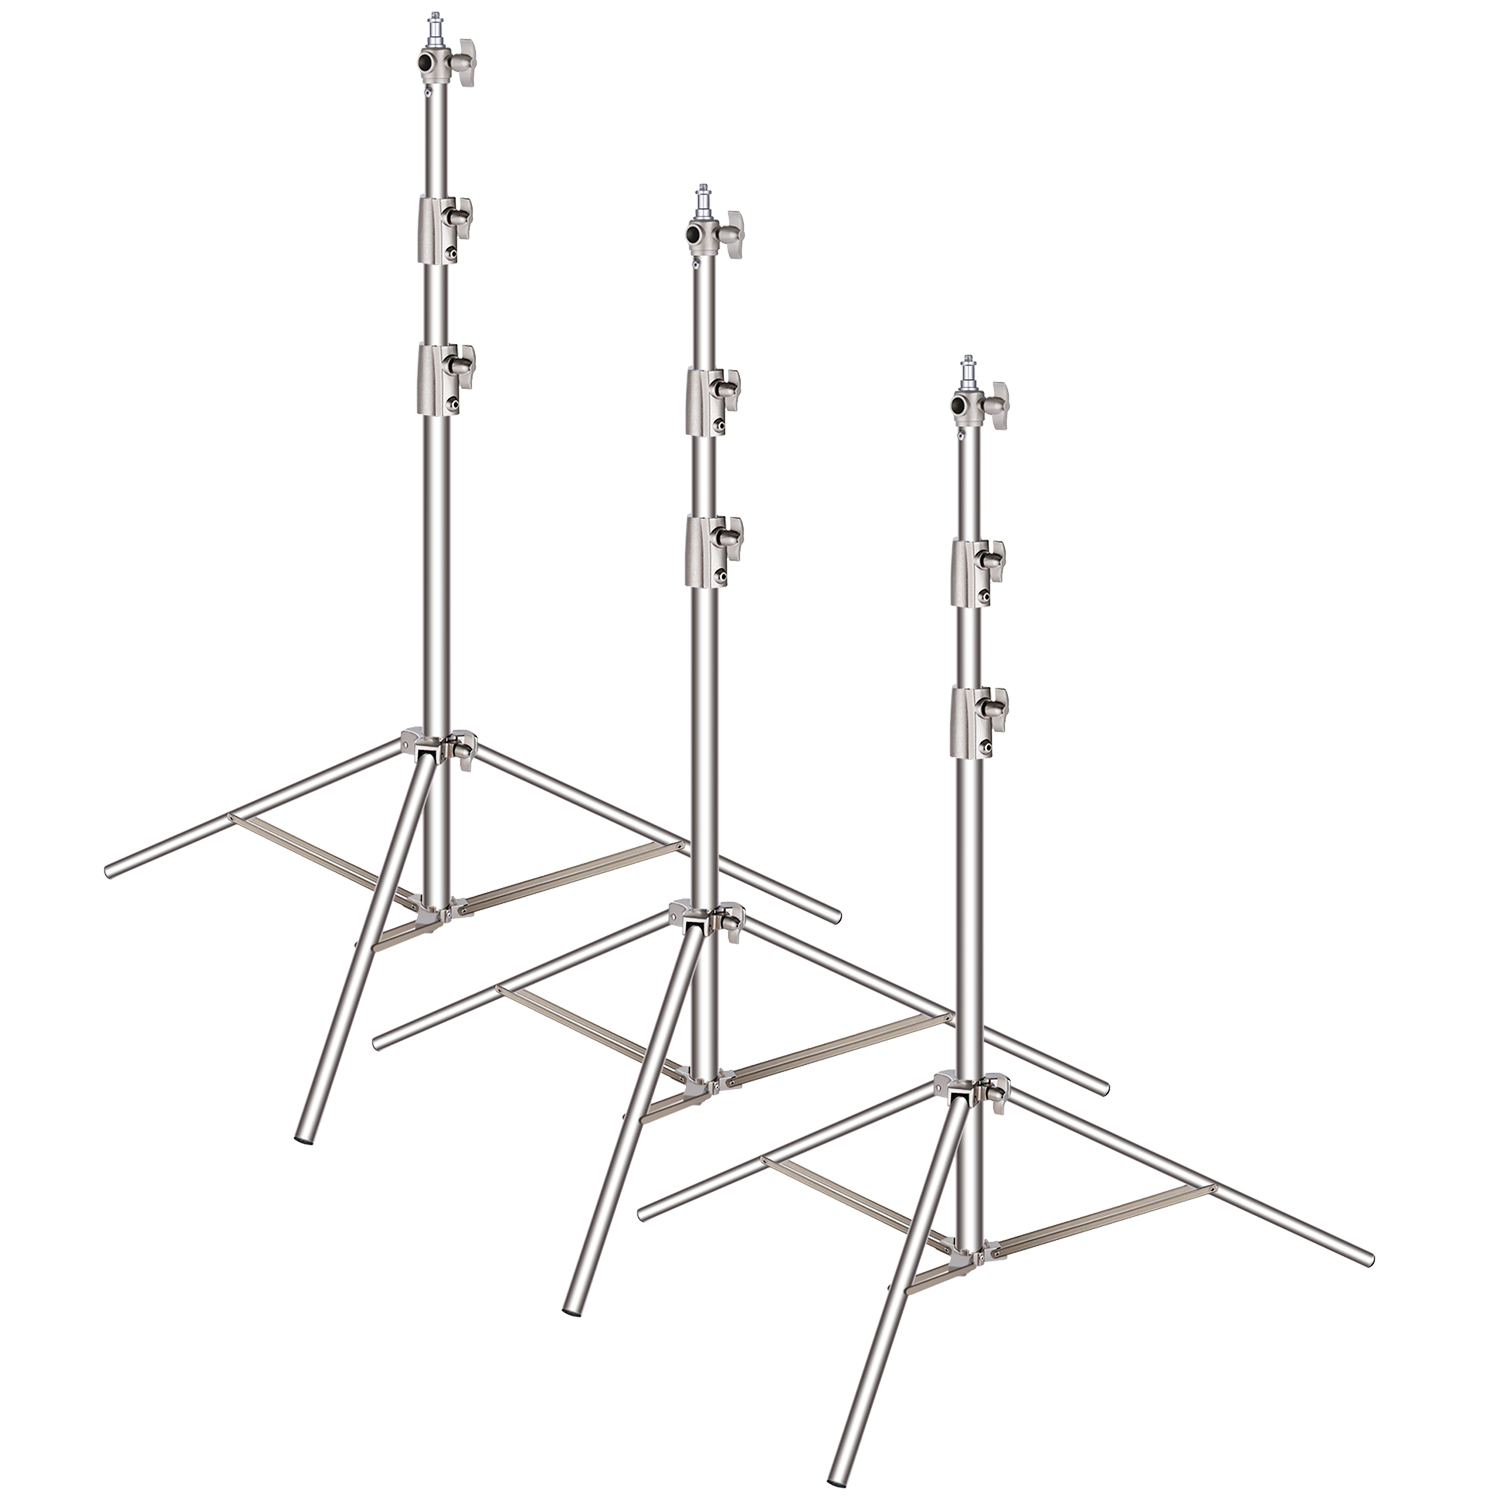 Heavy Duty Stainless Steel Light Stands.